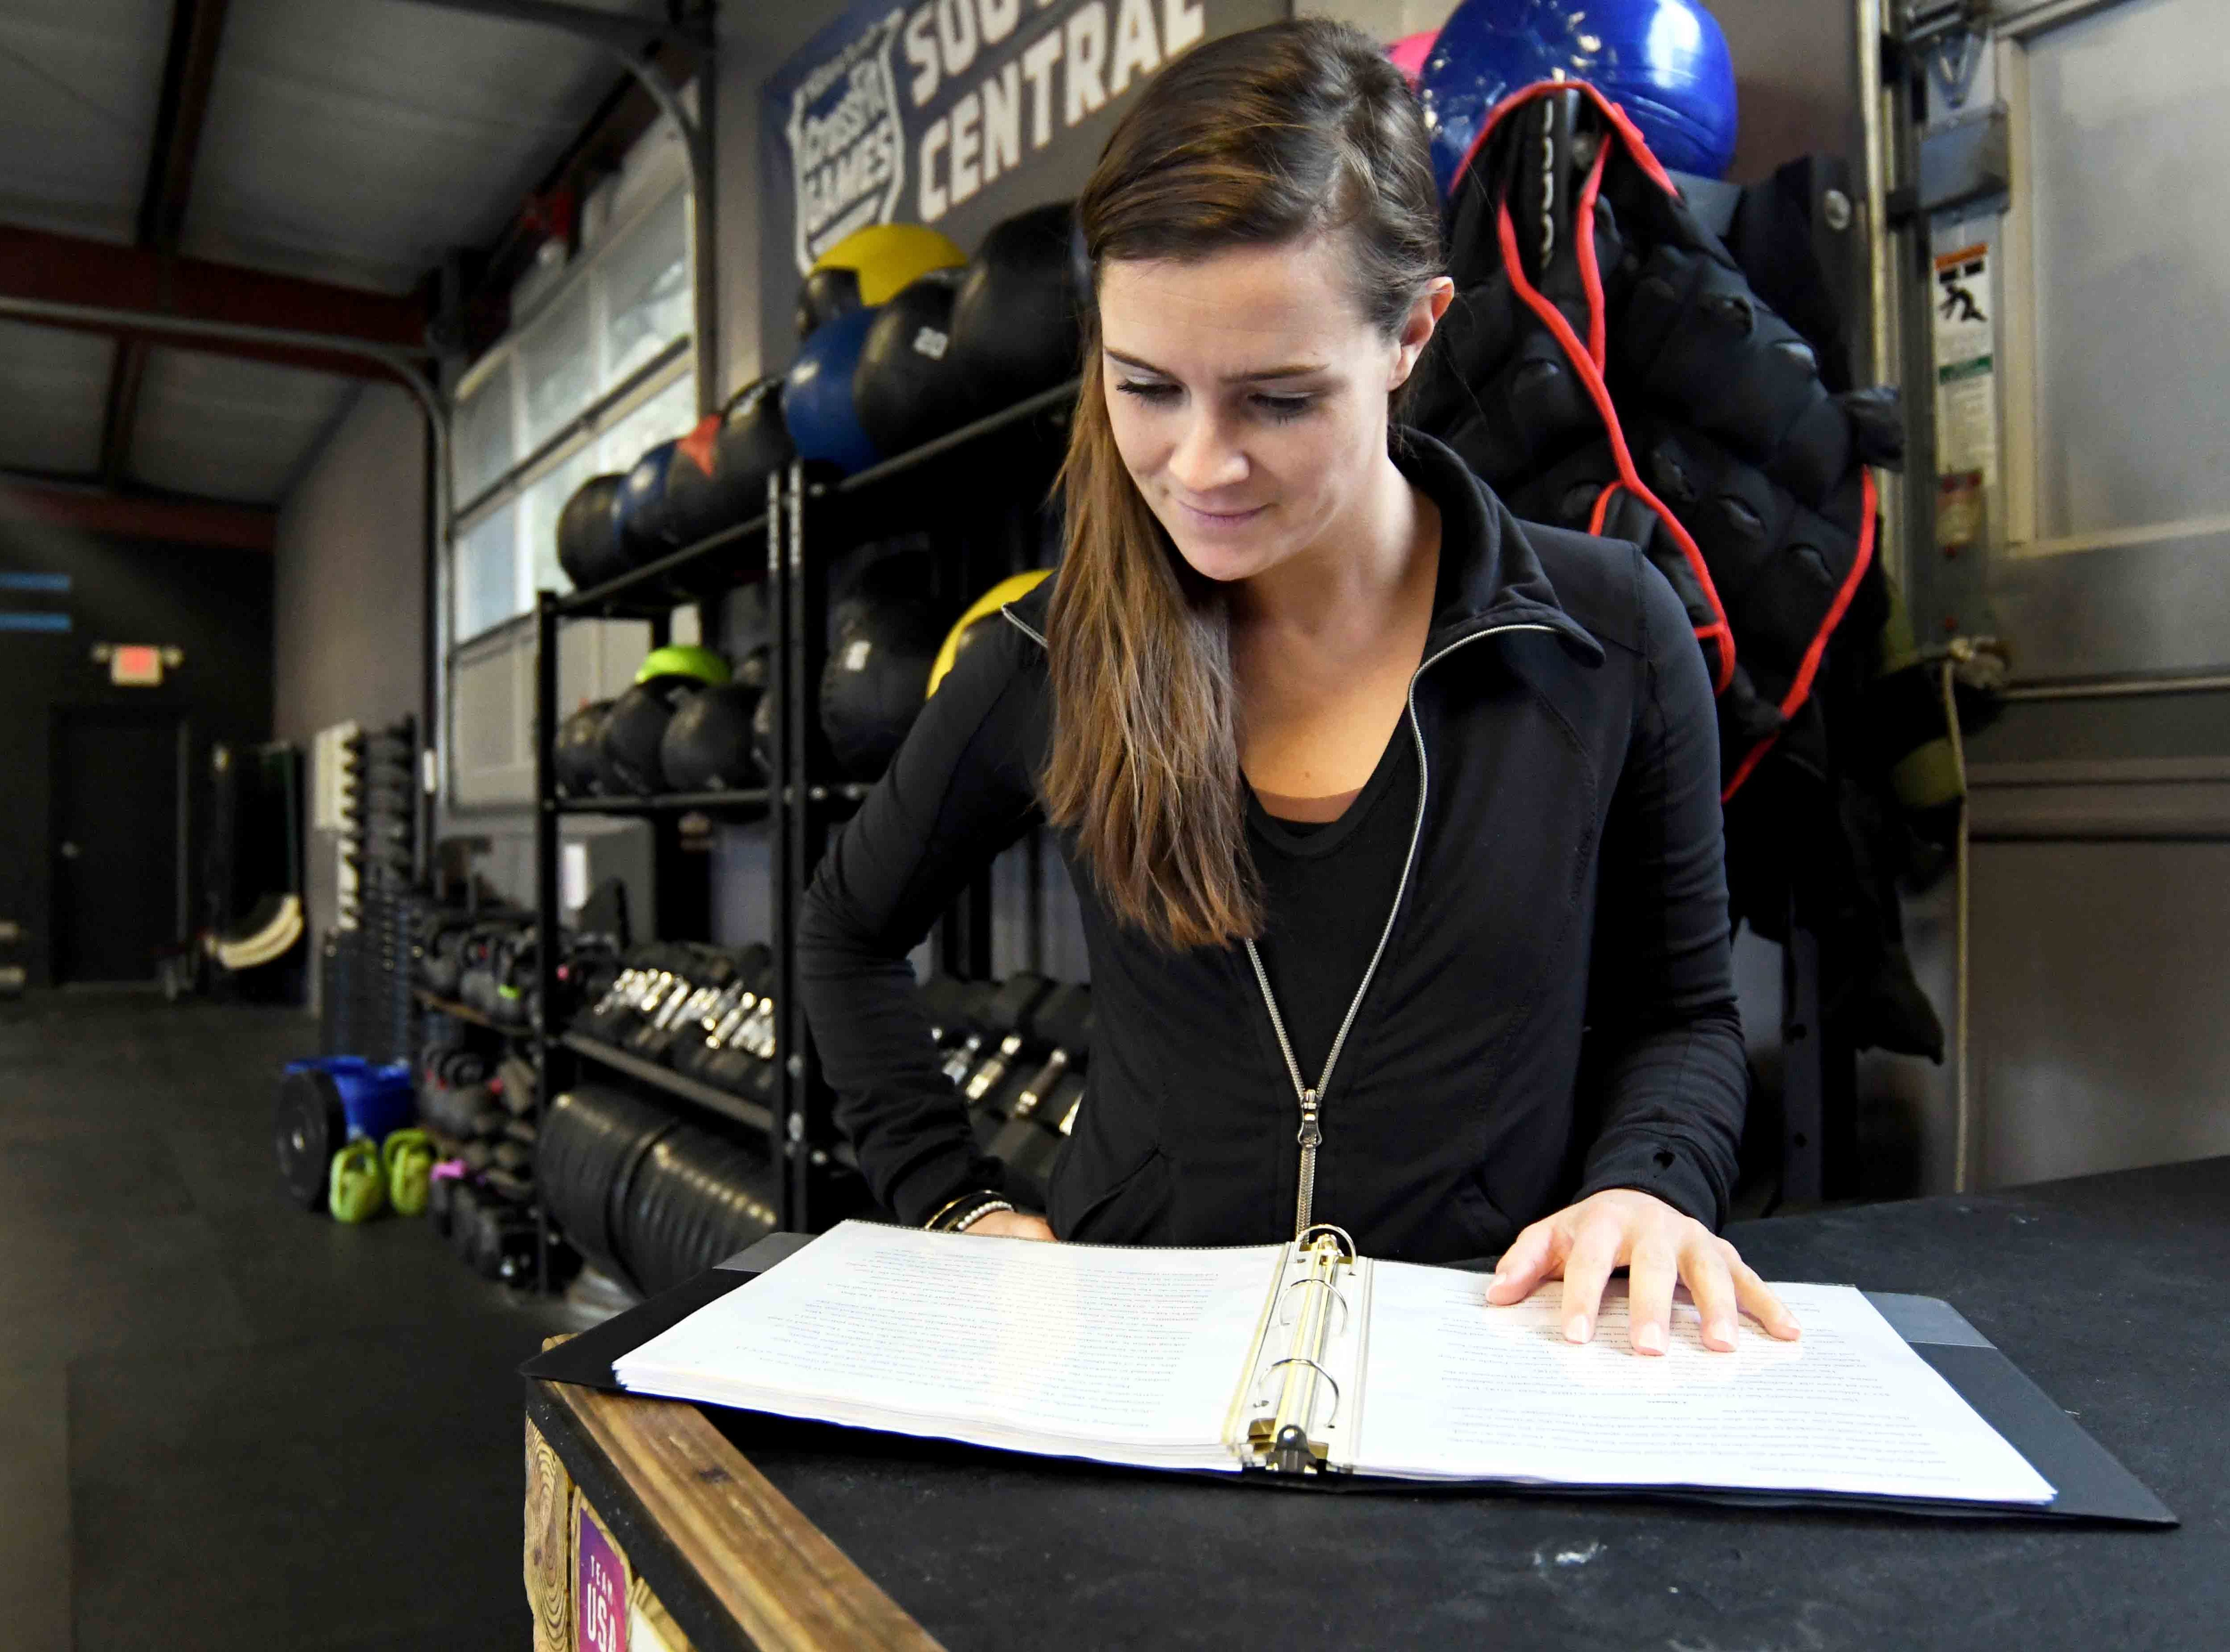 Manager Meghan Fisher shows how the University of Southern Mississippi School of Marketing students provided solutions to problems for real-life clients like Fourth Street Crossfit in Hattiesburg.